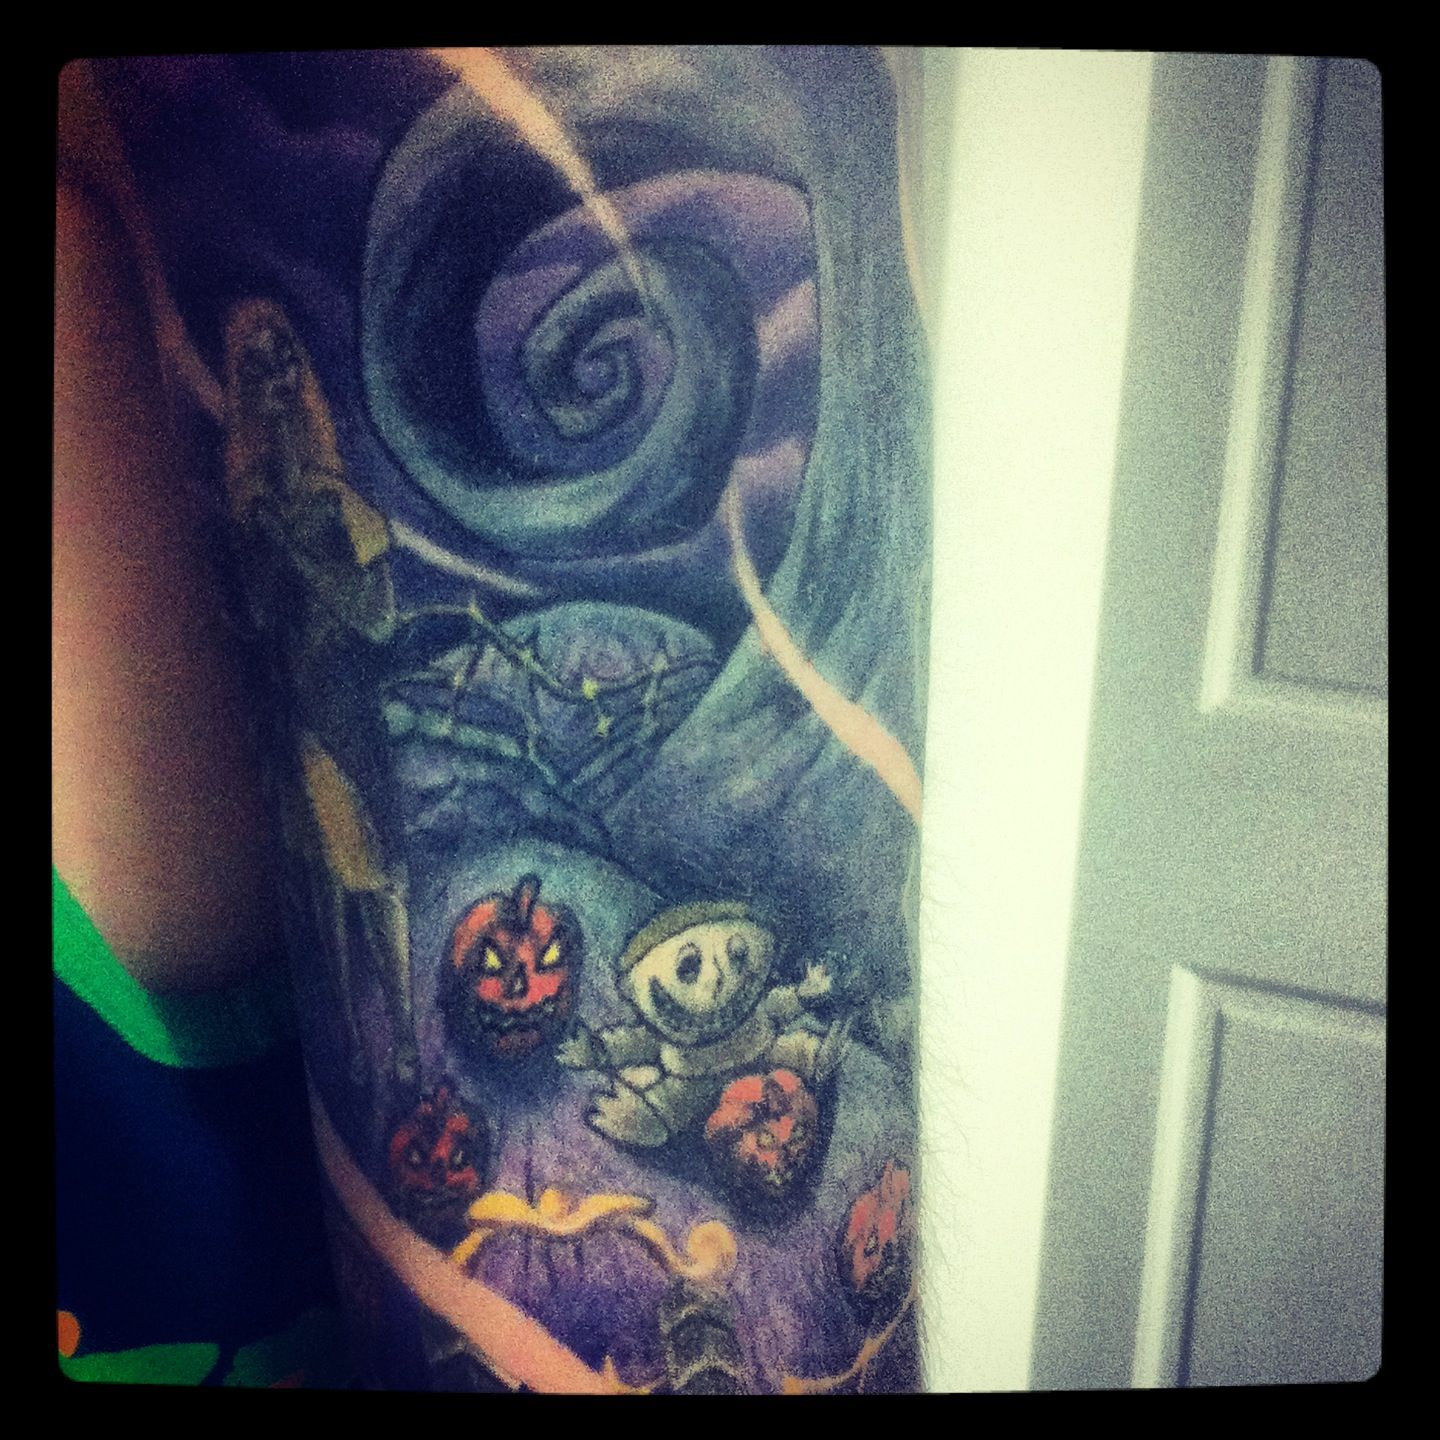 Nightmare Before Christmas tattoo | Tattoo obsessions. | Pinterest ...